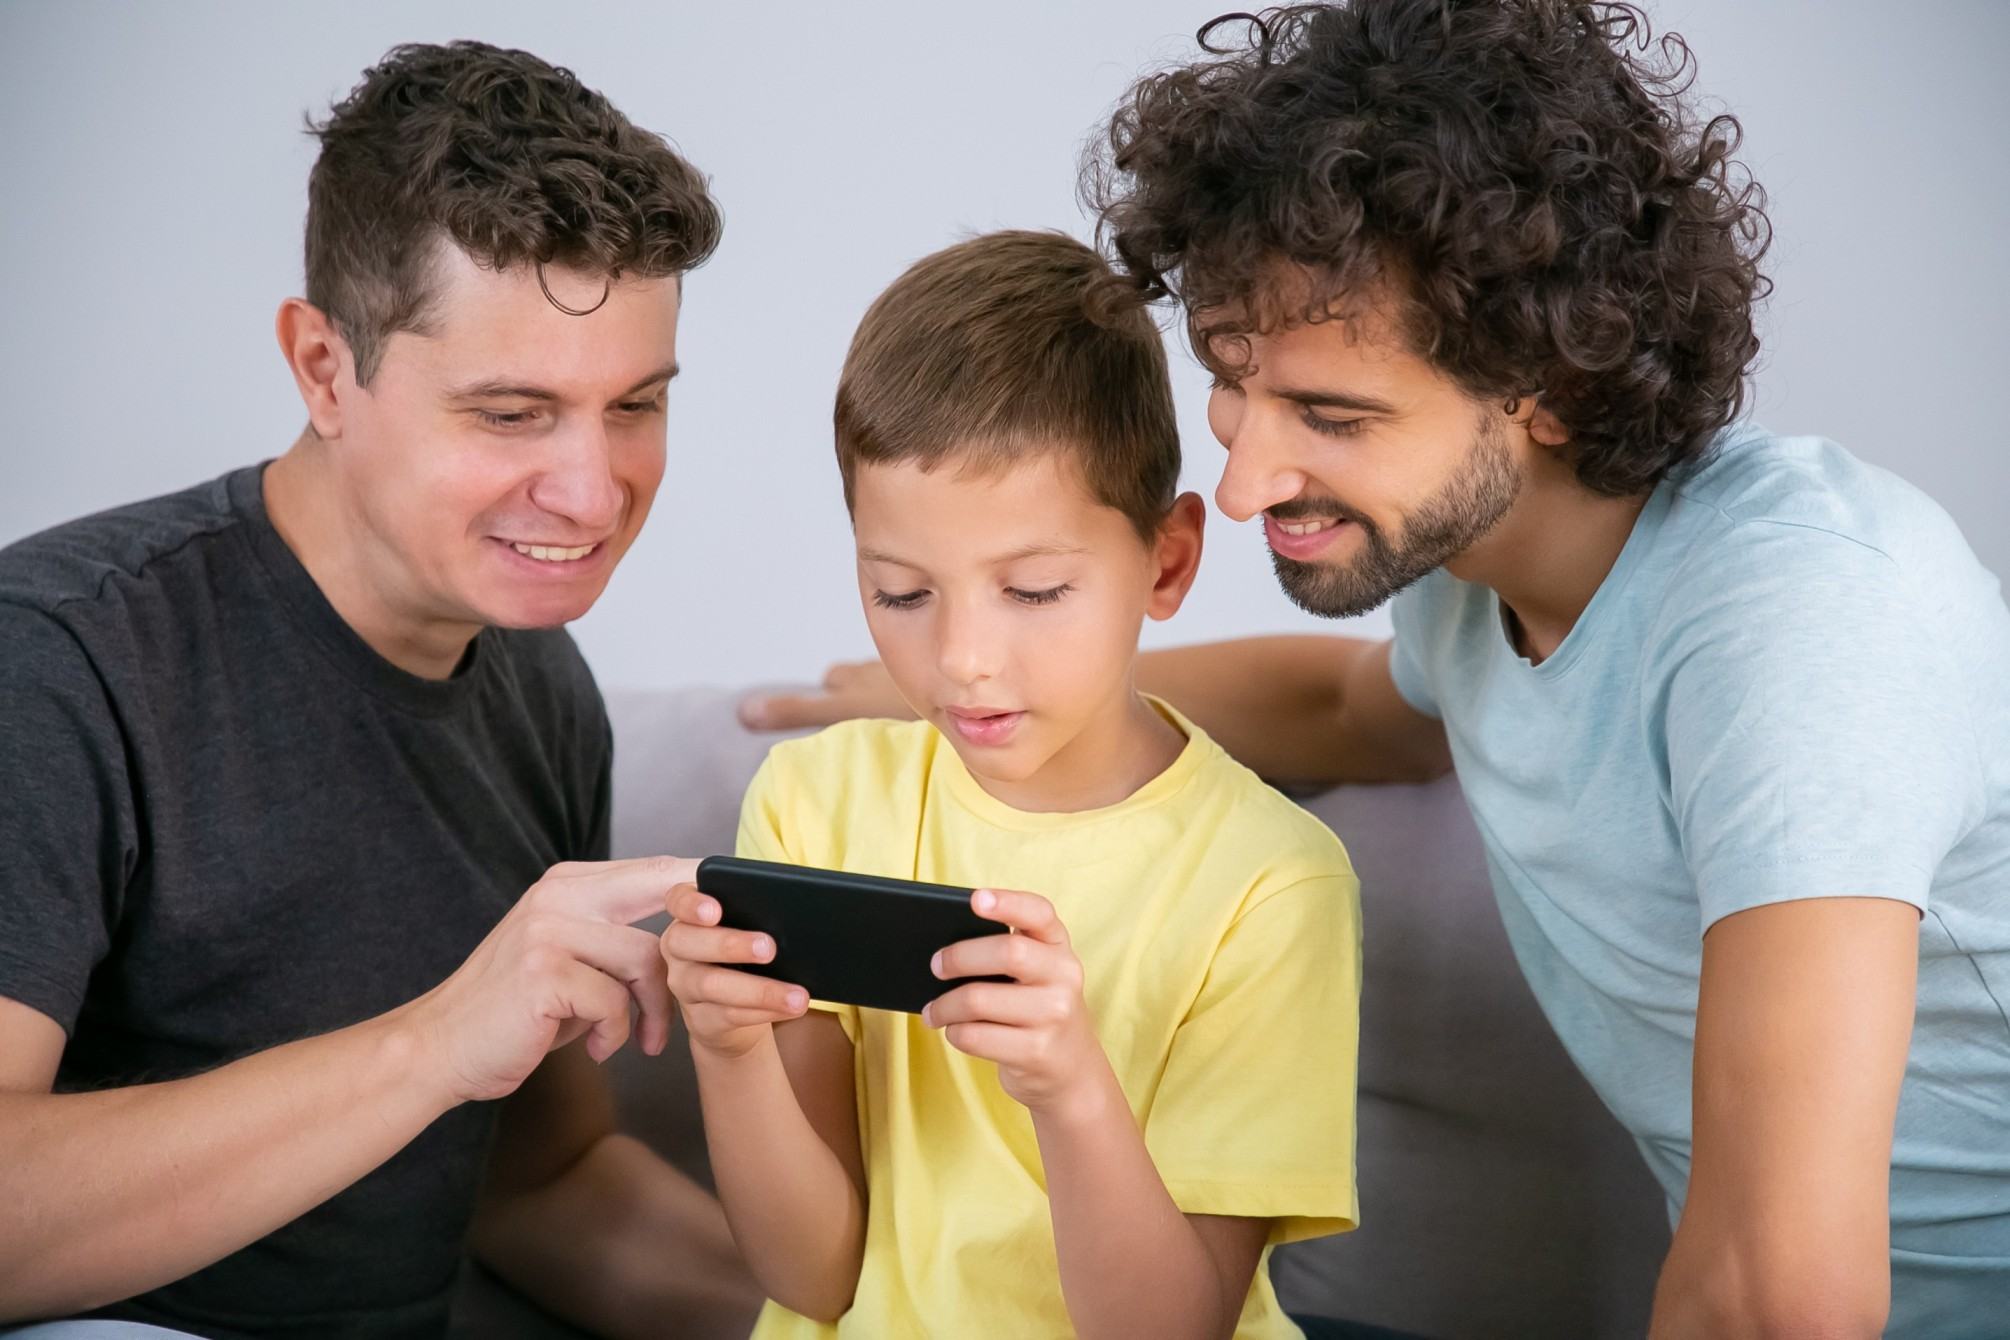 two-happy-dads-teaching-son-use-online-app-cell-boy-playing-game-mobile-phone-family-home-communication-concept (1) (1)